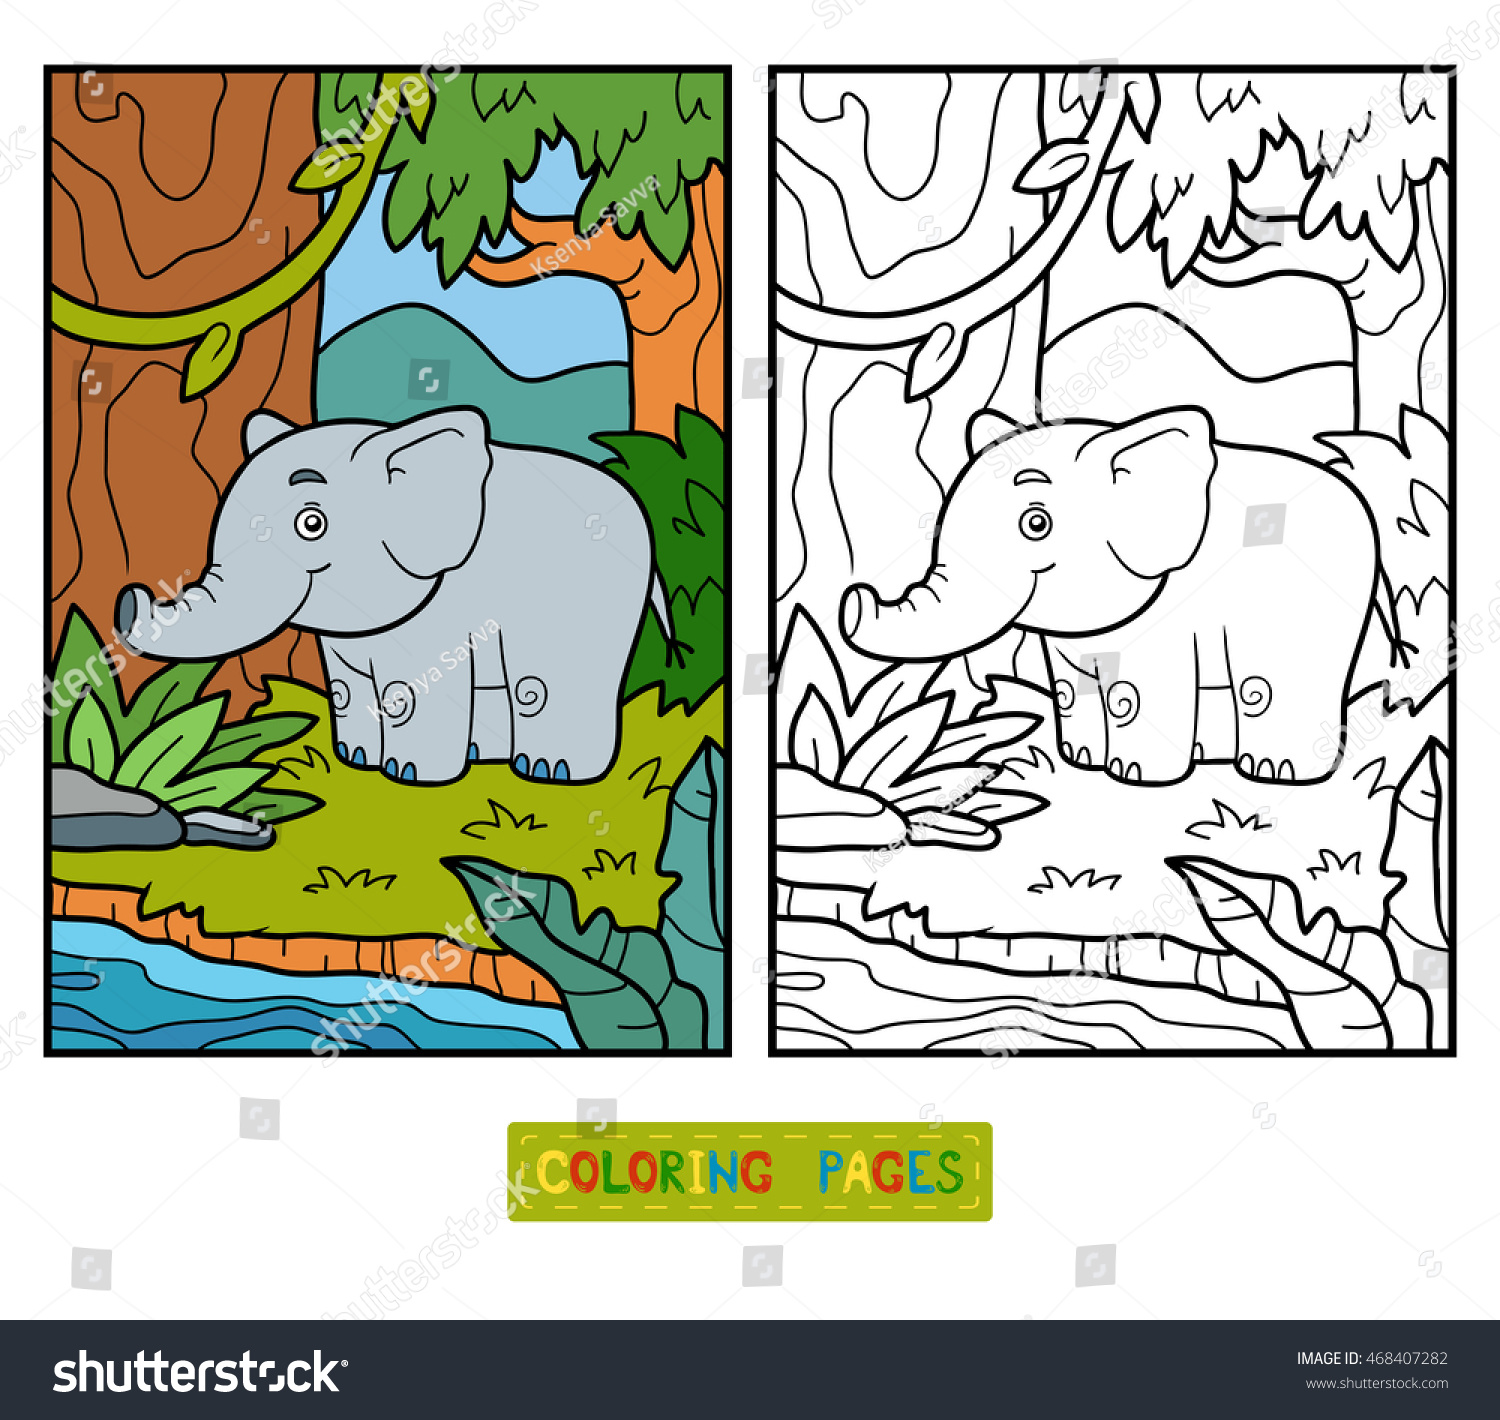 Coloring book for children, elephant and background | EZ Canvas